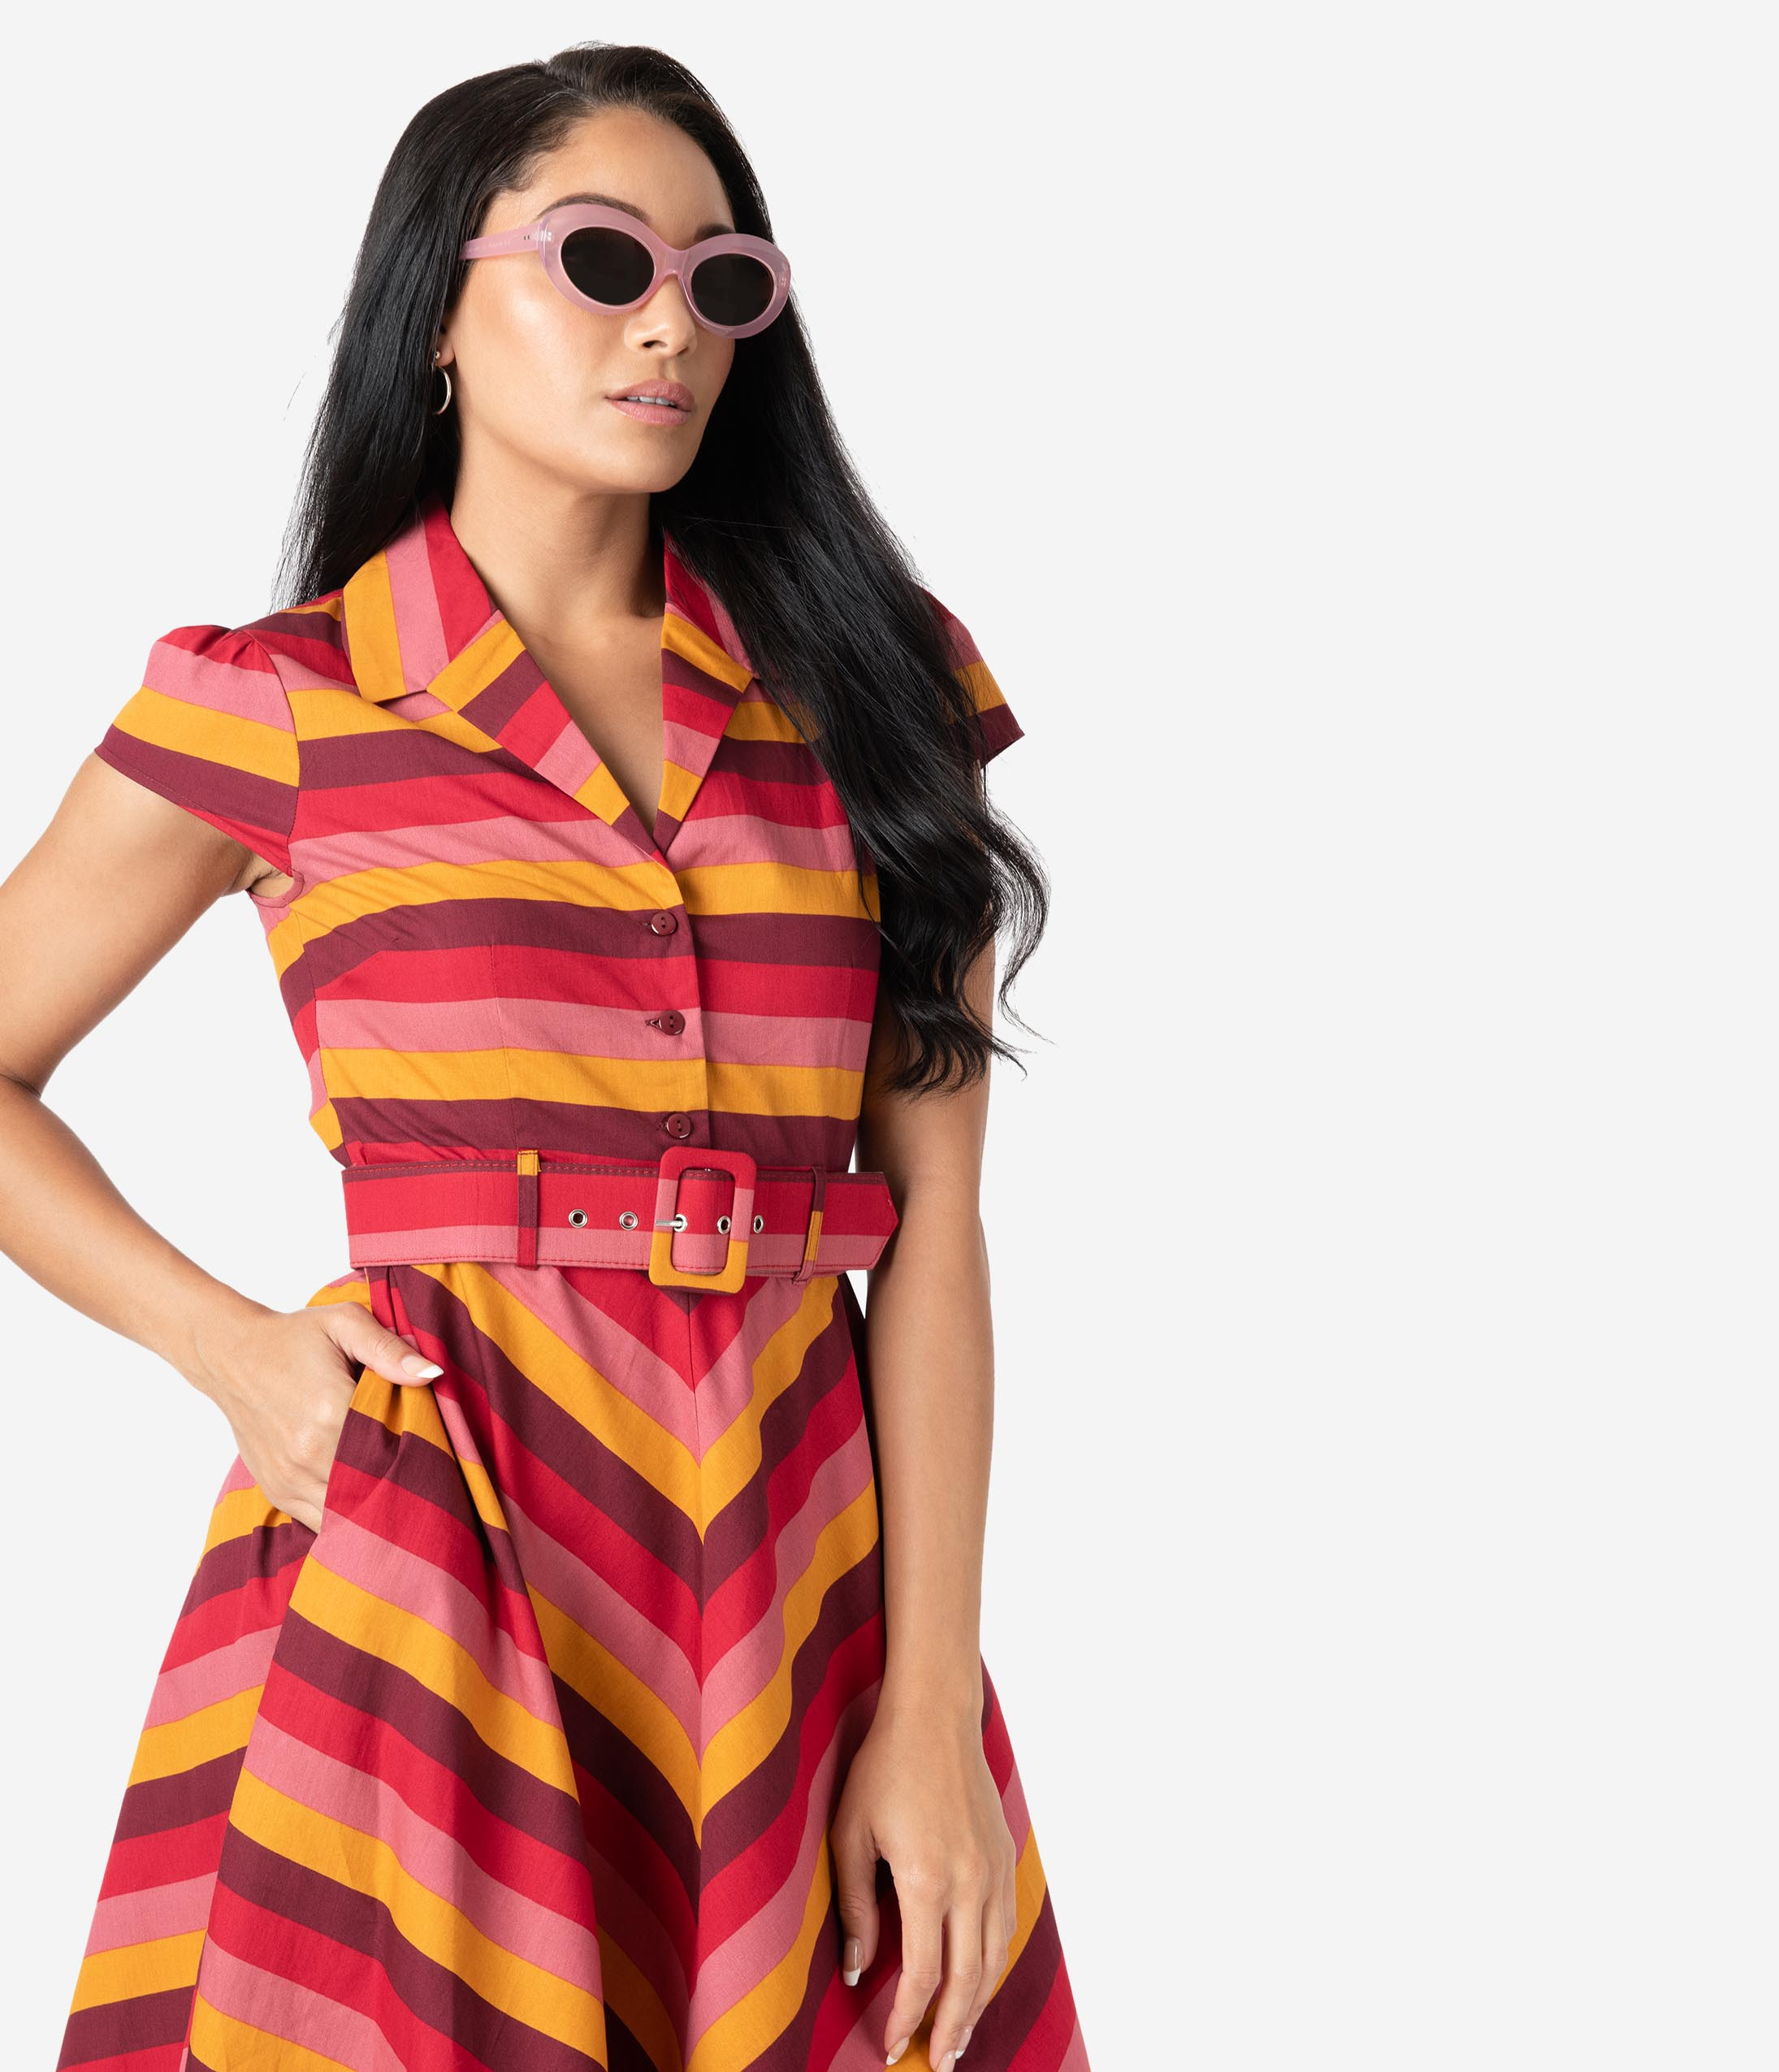 Fifties Dresses : 1950s Style Swing to Wiggle Dresses 1950S Style Multicolor Stripe Sweet Chili Cotton Swing Dress $88.00 AT vintagedancer.com